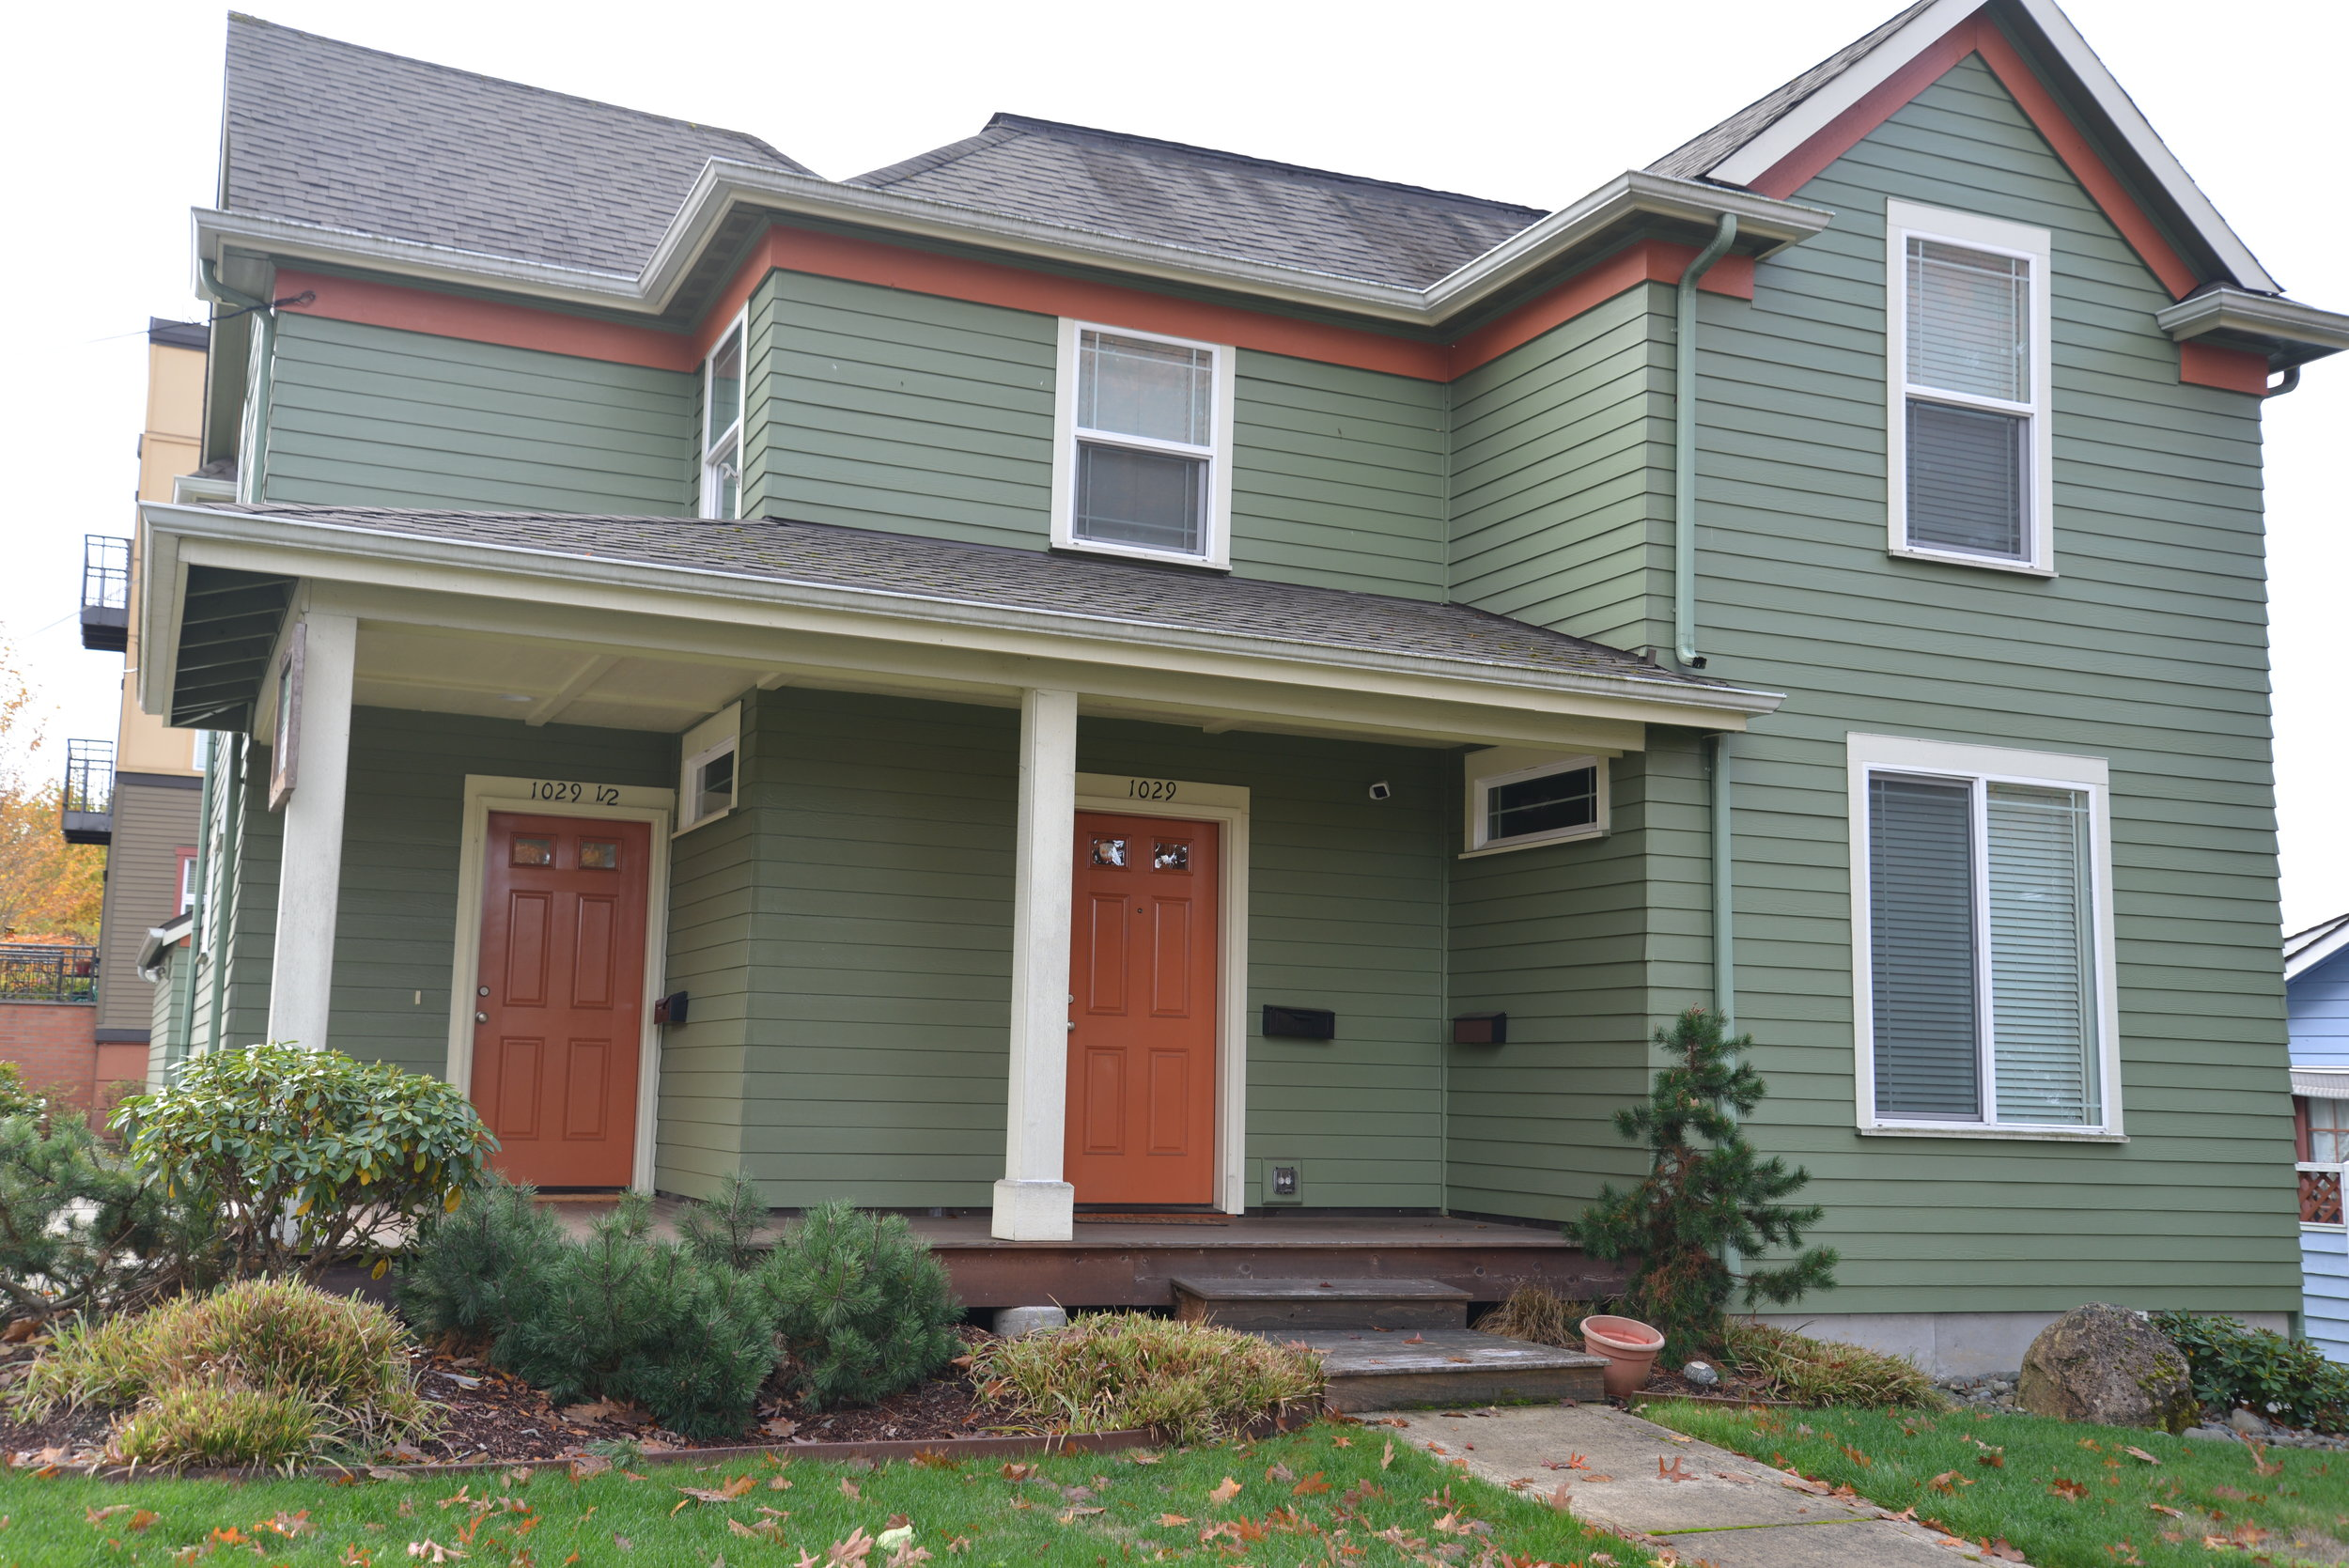 Single Family Home converted to a Duplex - Existing design criteria requires units to maintain neighborhood character  Courtesy of the City of Olympia